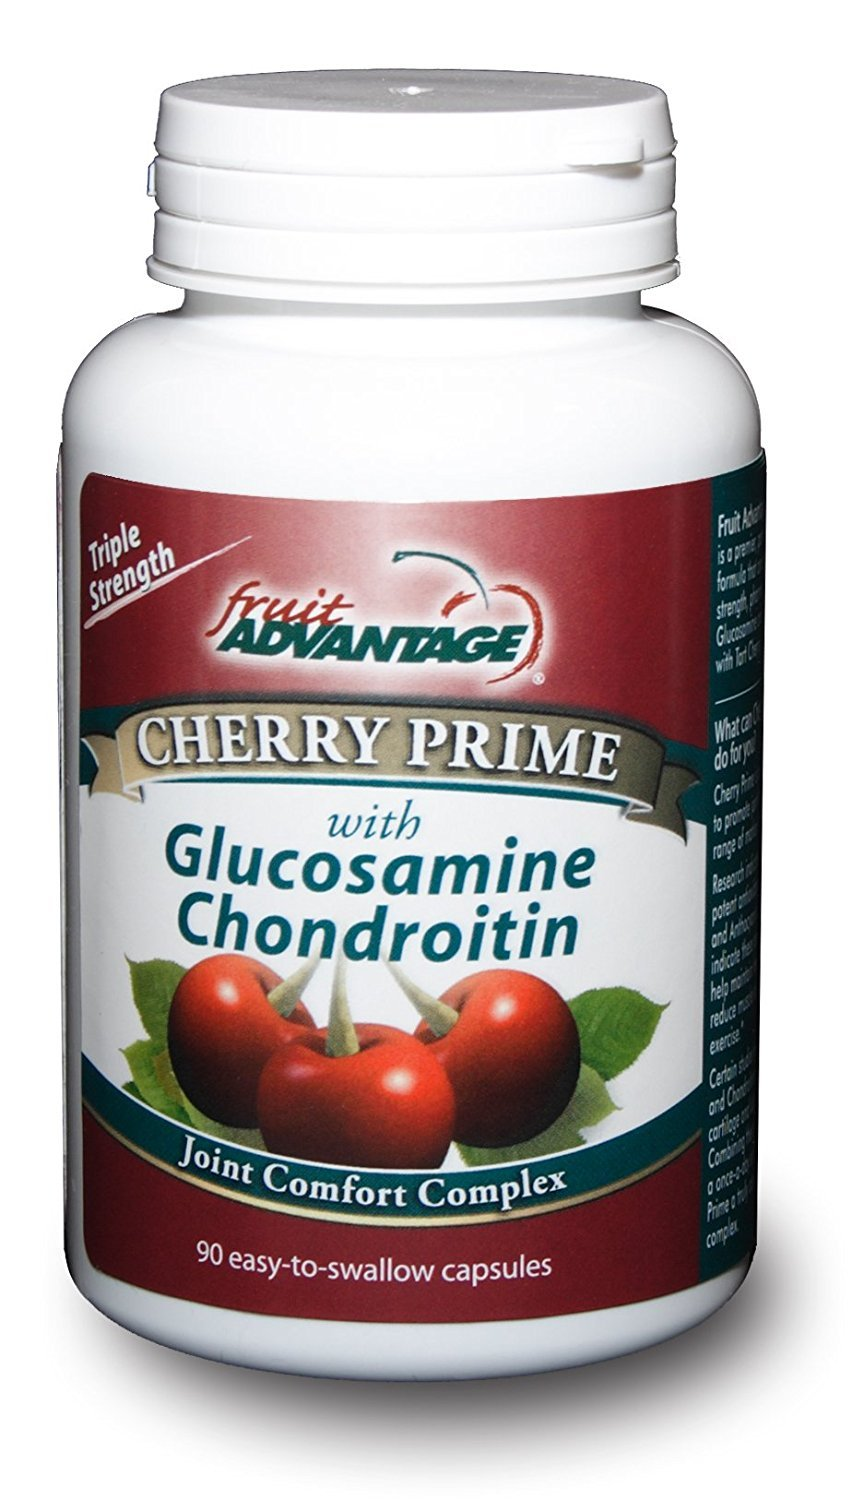 Fruit Advantage Cherry Prime Montmorency Tart Cherry Extract with Glucosamine & Chondroitin - 90 Capsules (6-Pack)